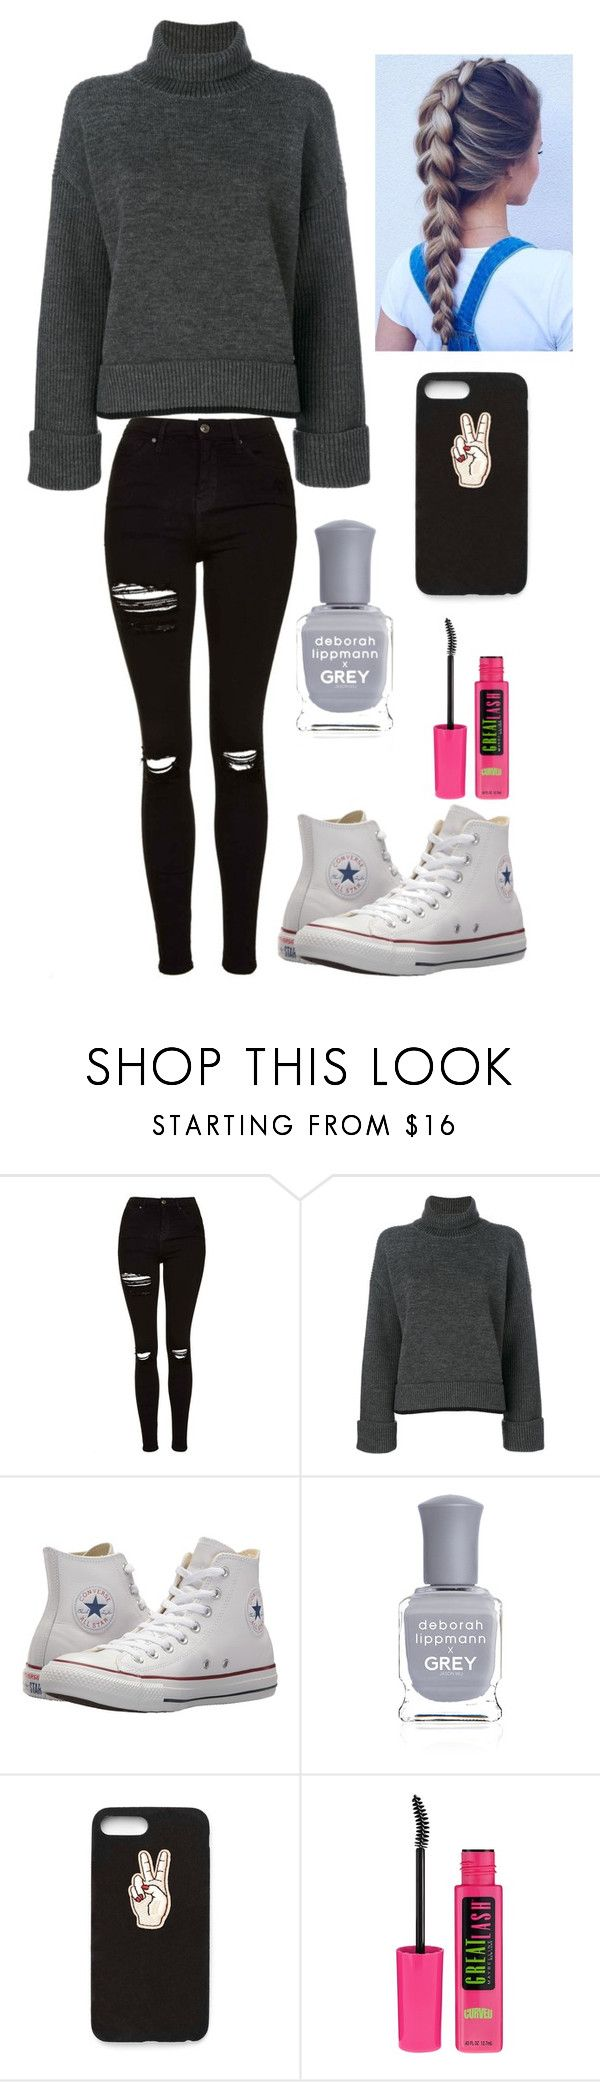 """""""School"""" by lagr on Polyvore featuring Topshop, Dsquared2, Converse, Deborah Lippmann, Nasty Gal and Maybelline"""